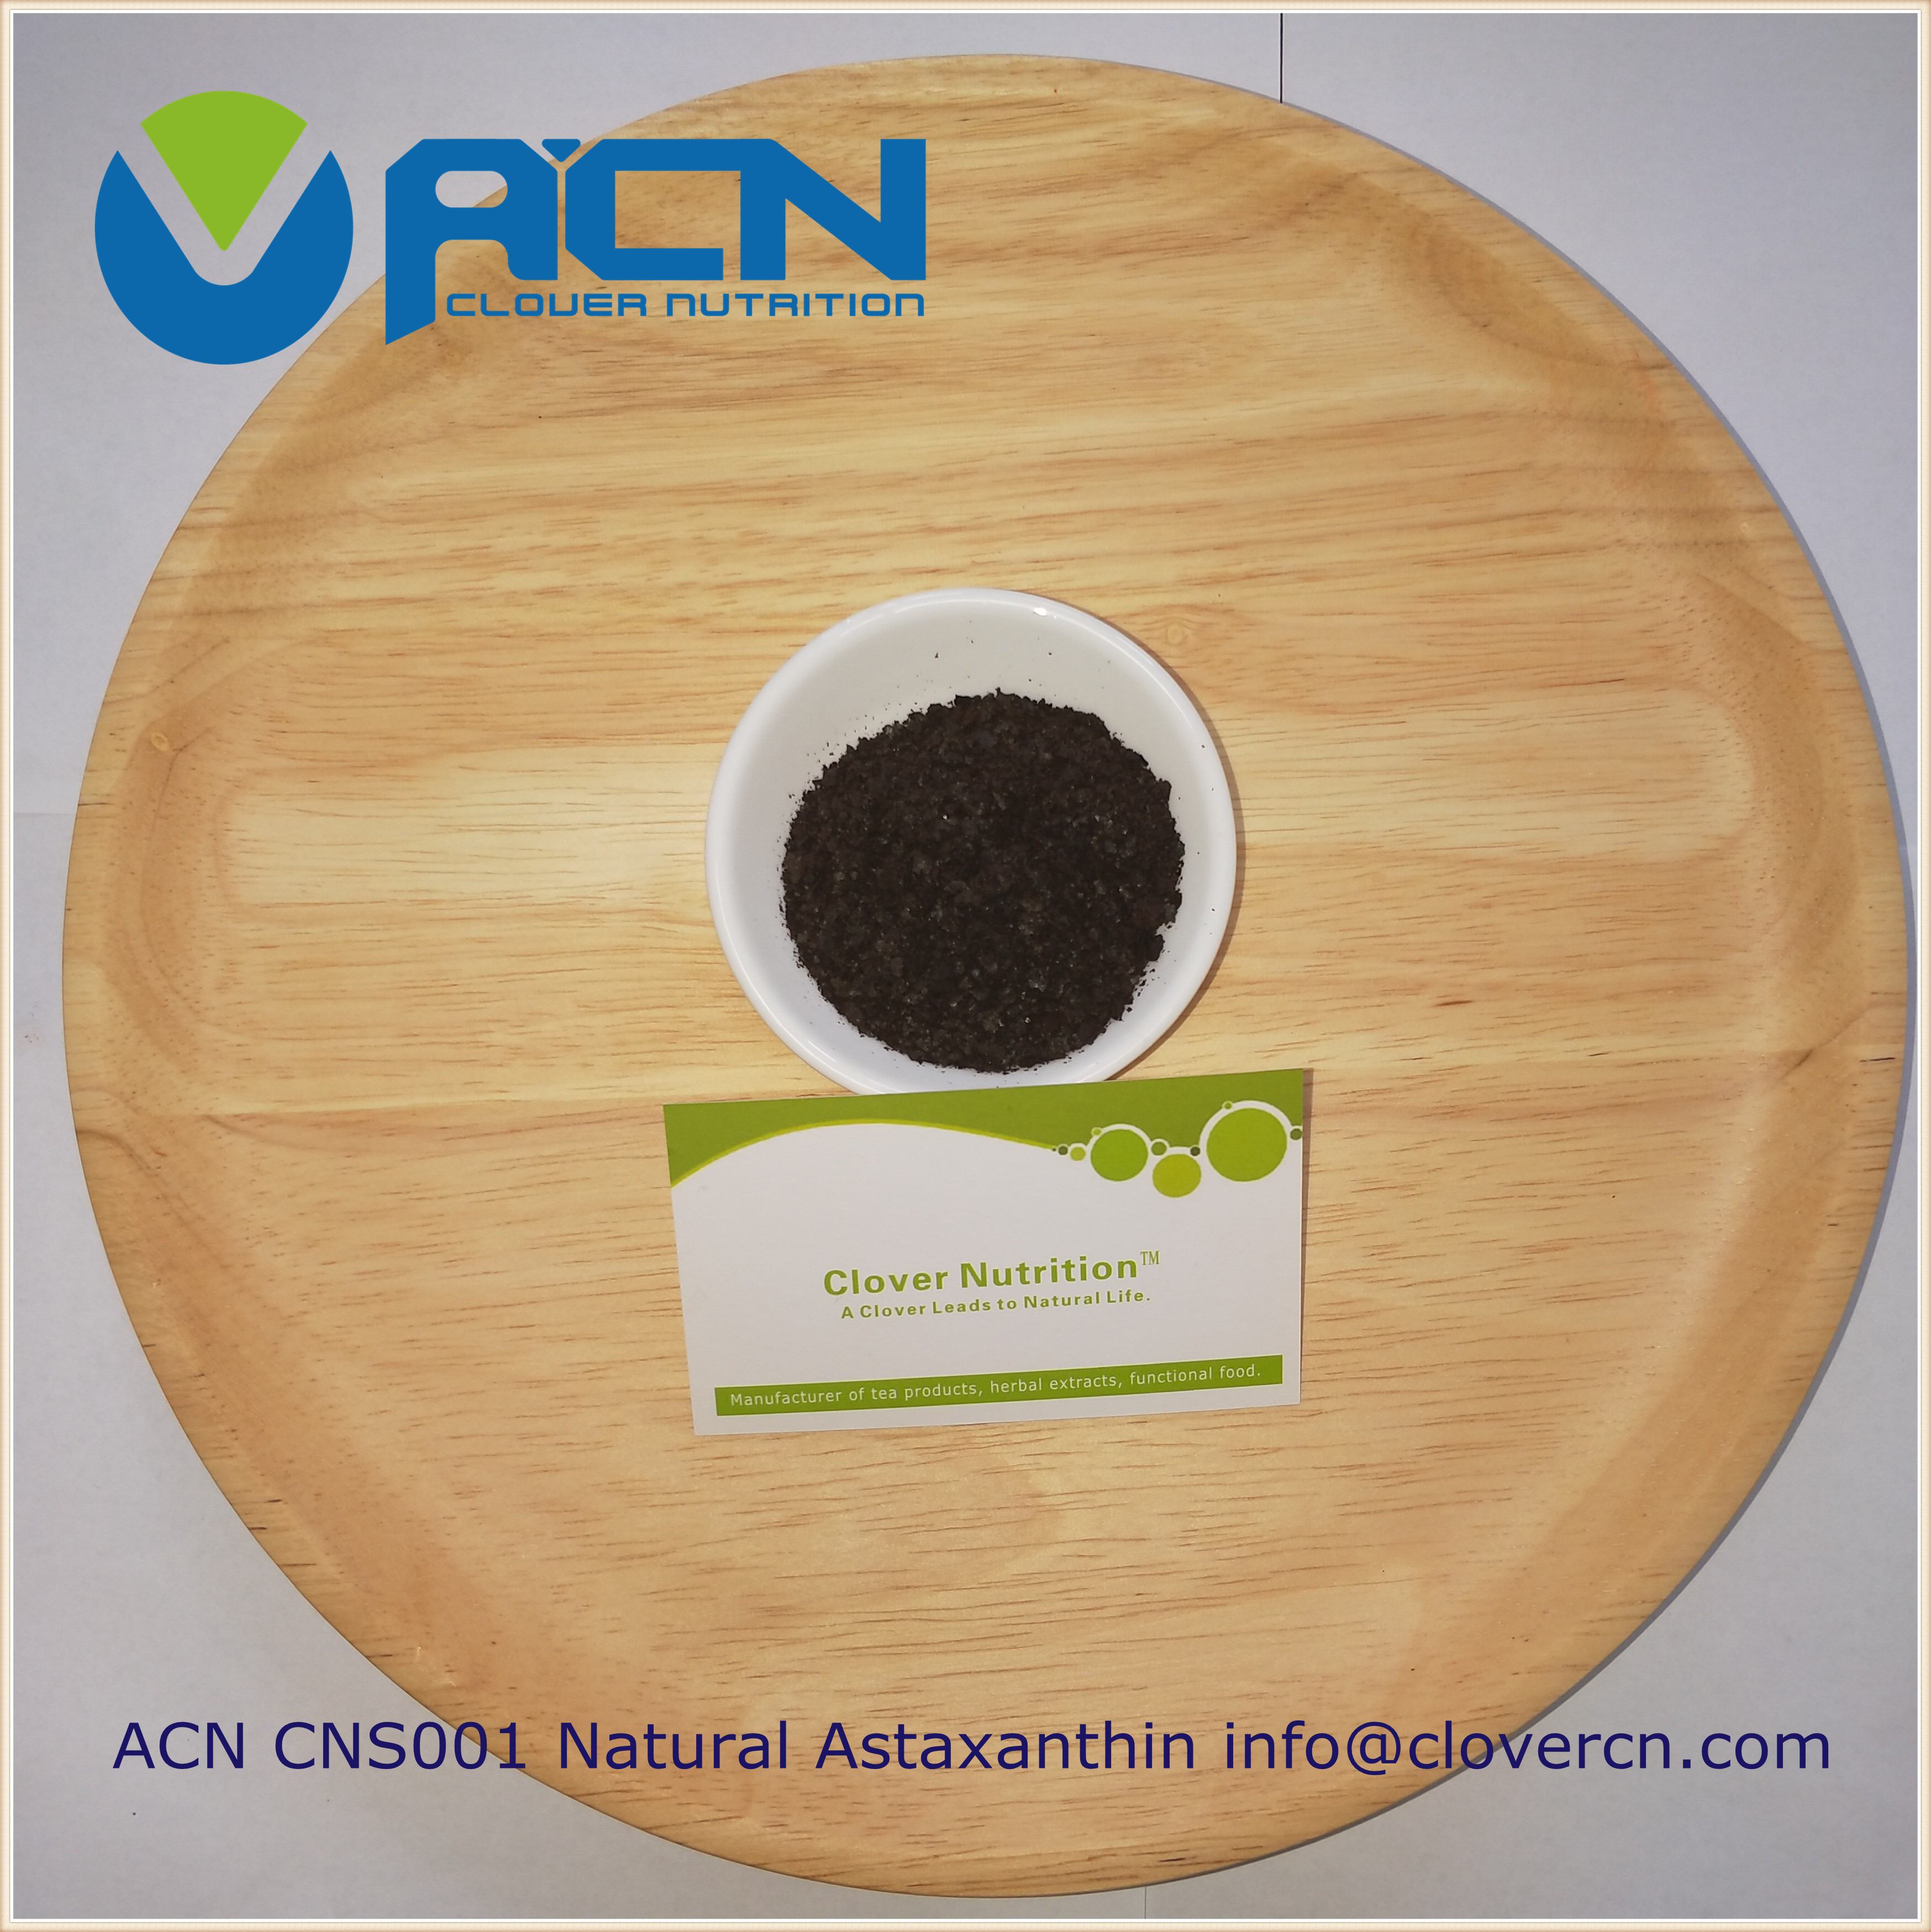 ACN CNS001 natural Astaxanthin cracked biomass powder